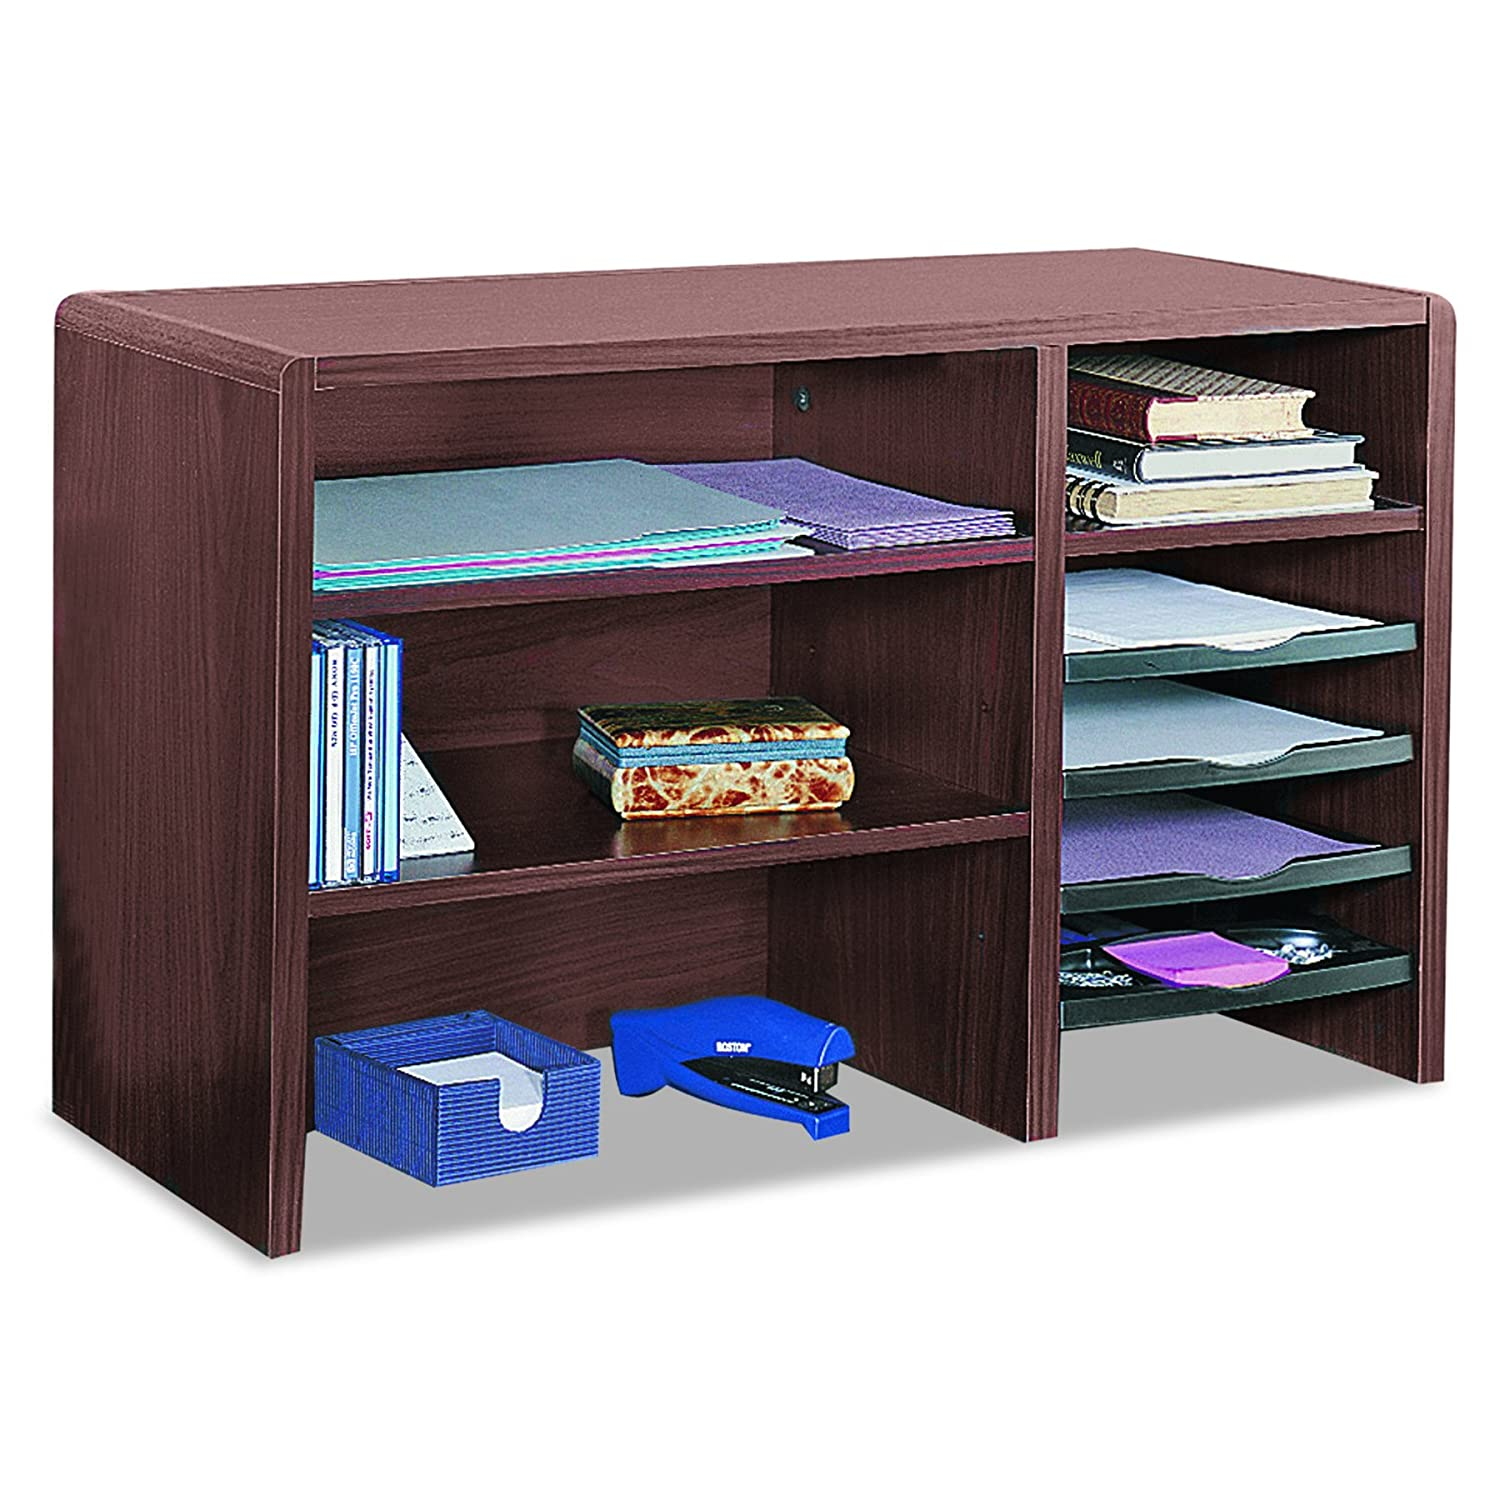 """Amazon.com : Safco Products 3692MH Compact Desk Top Organizer, 29""""W,  Mahogany : Literature Organizers : Office Products"""